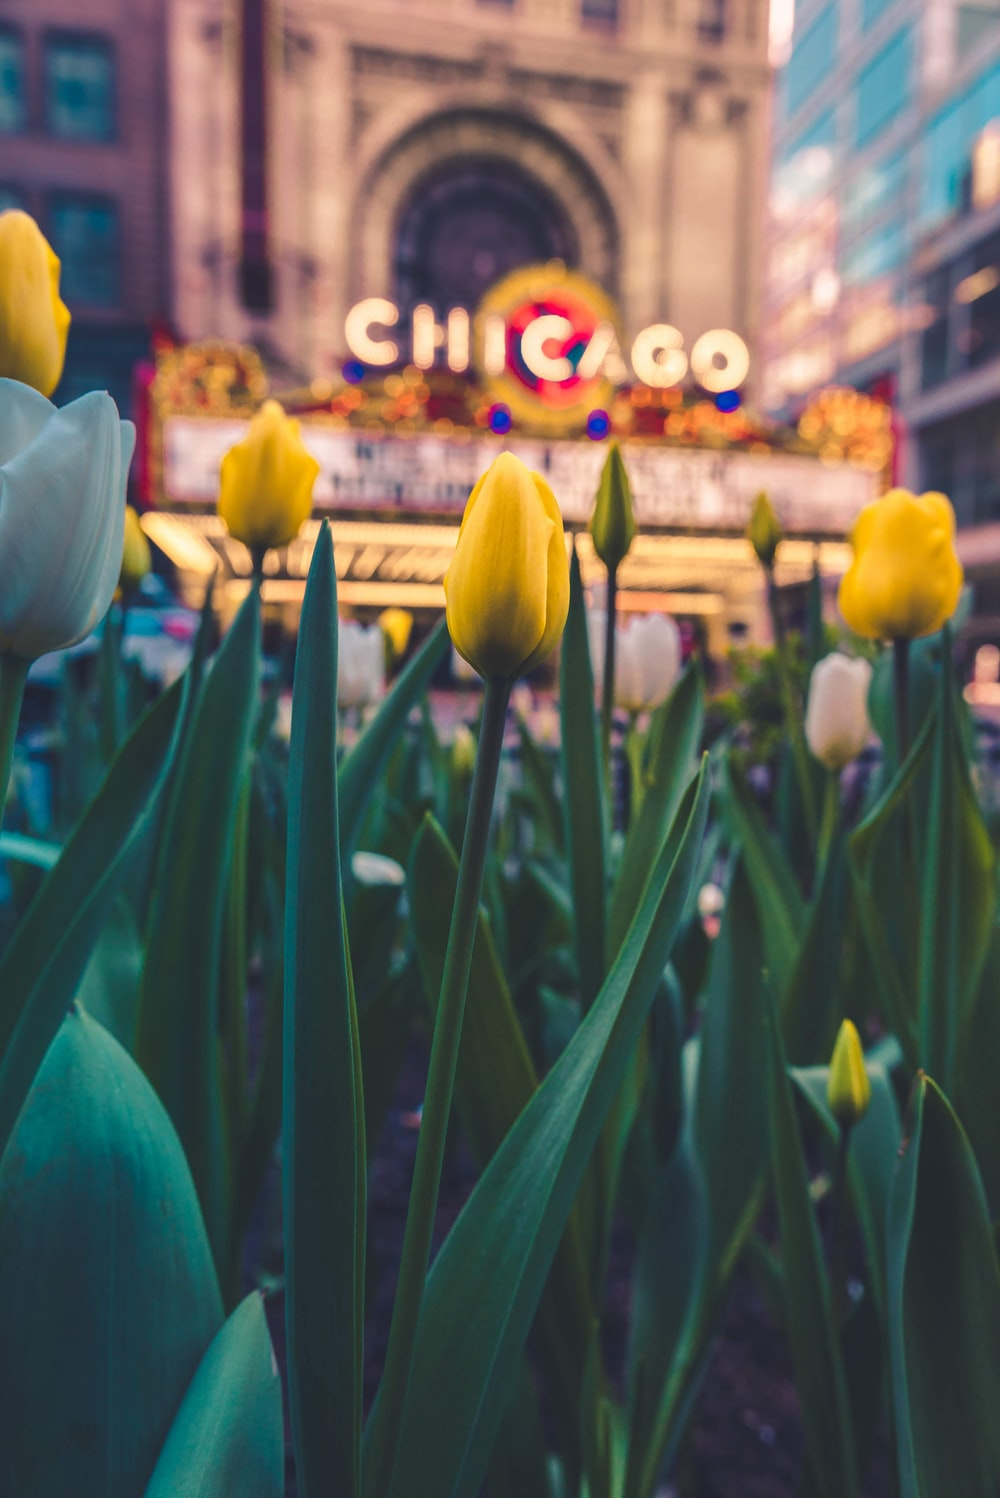 yellow tulip flowers across Chicago sign